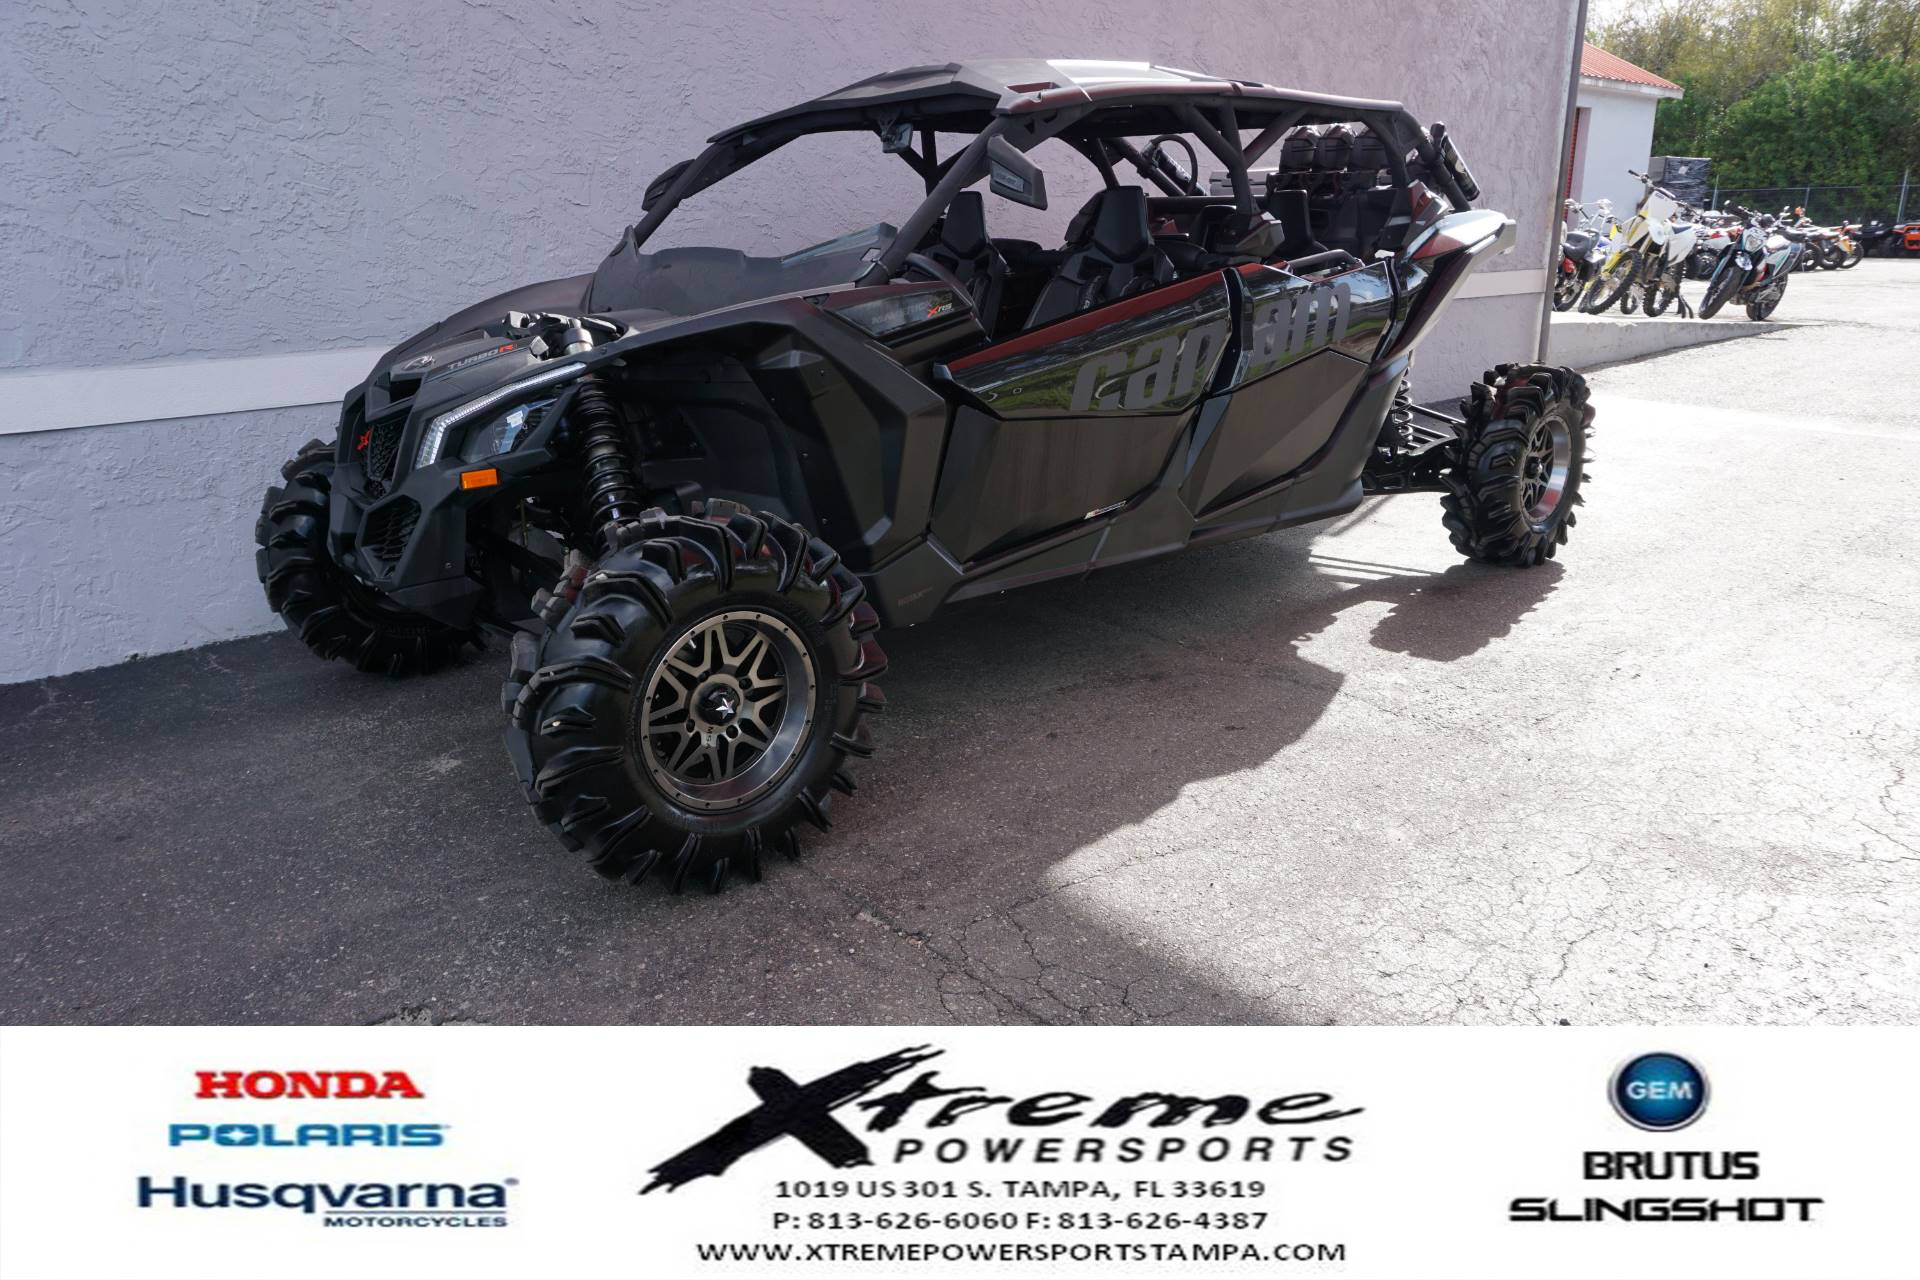 2017 Can-Am MAVERICK X3 TURBO MAX XRS in Tampa, Florida - Photo 2